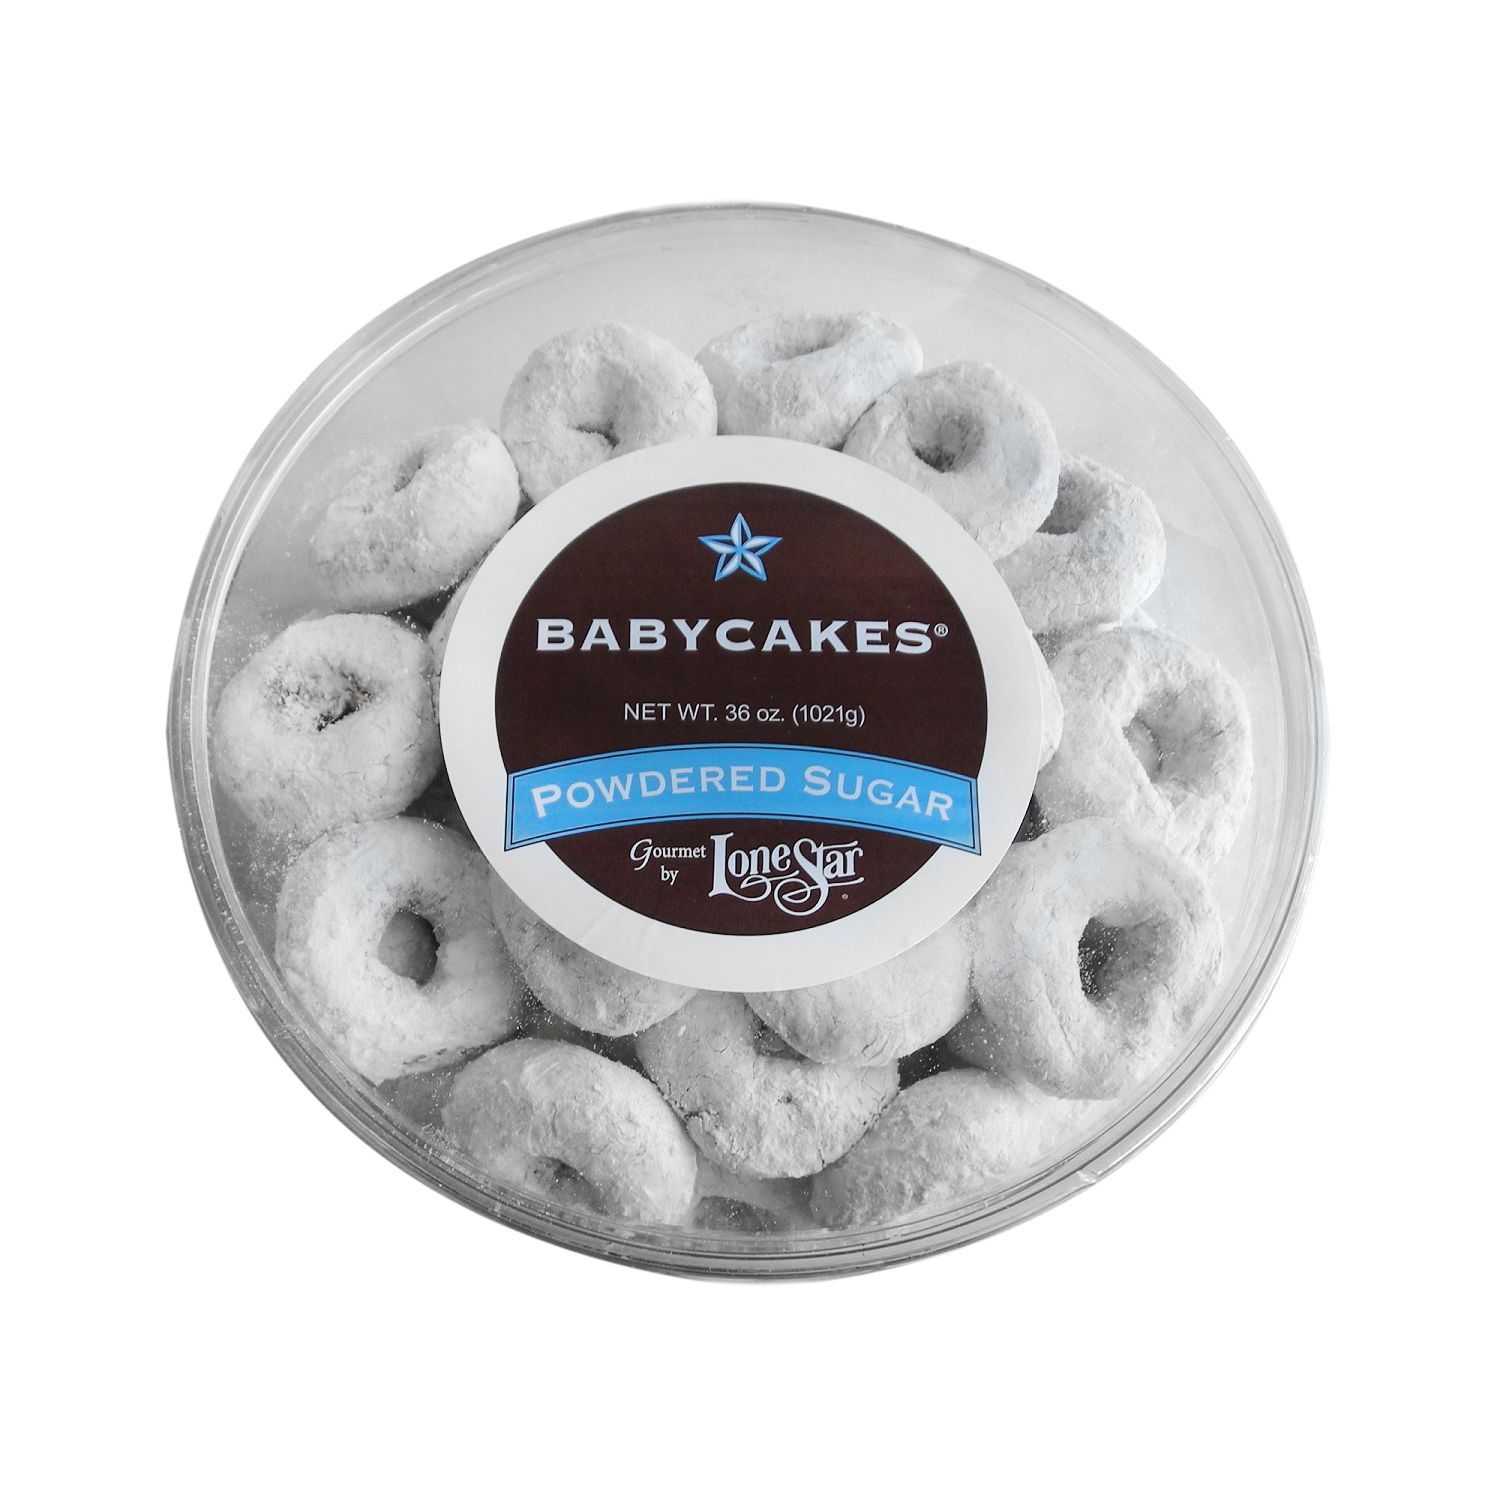 Lonestar Powdered Sugar Babycakes Donuts - 36 oz.